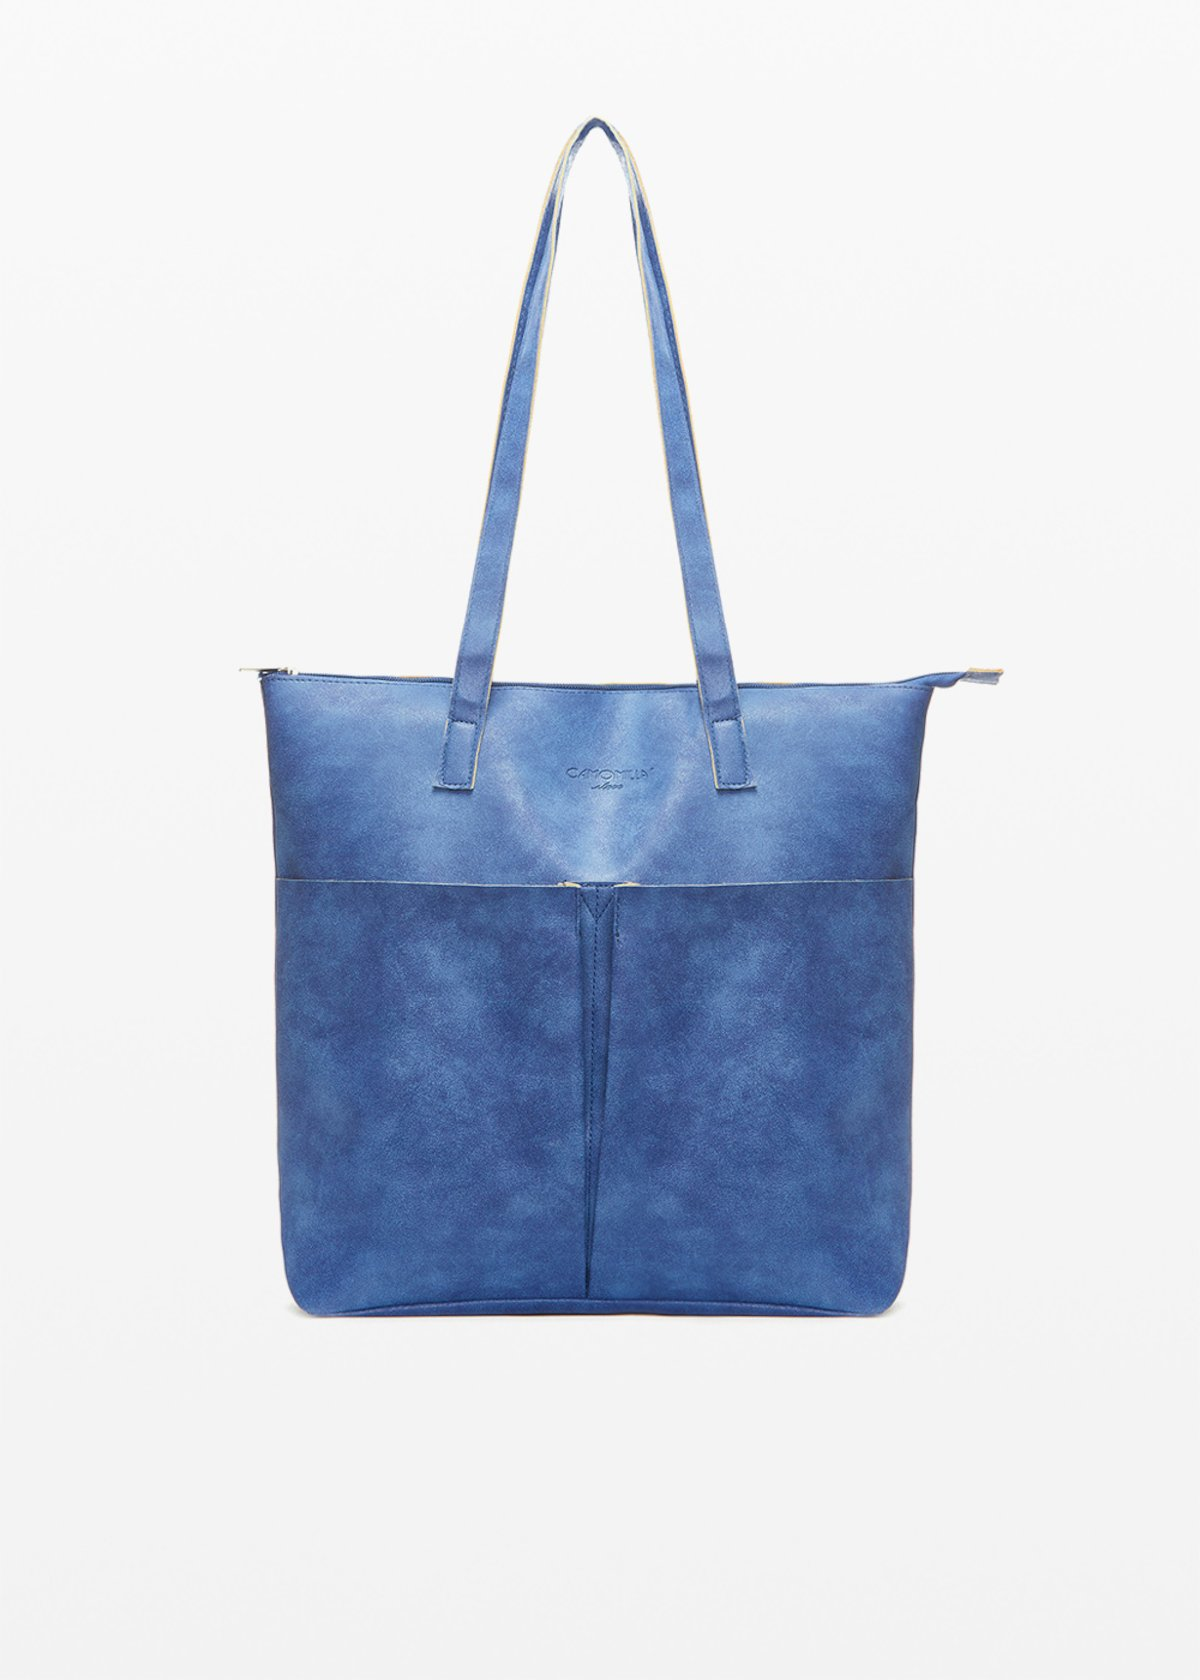 Faux leather Baly6 shopping bag unlined with pockets on the front - Blue